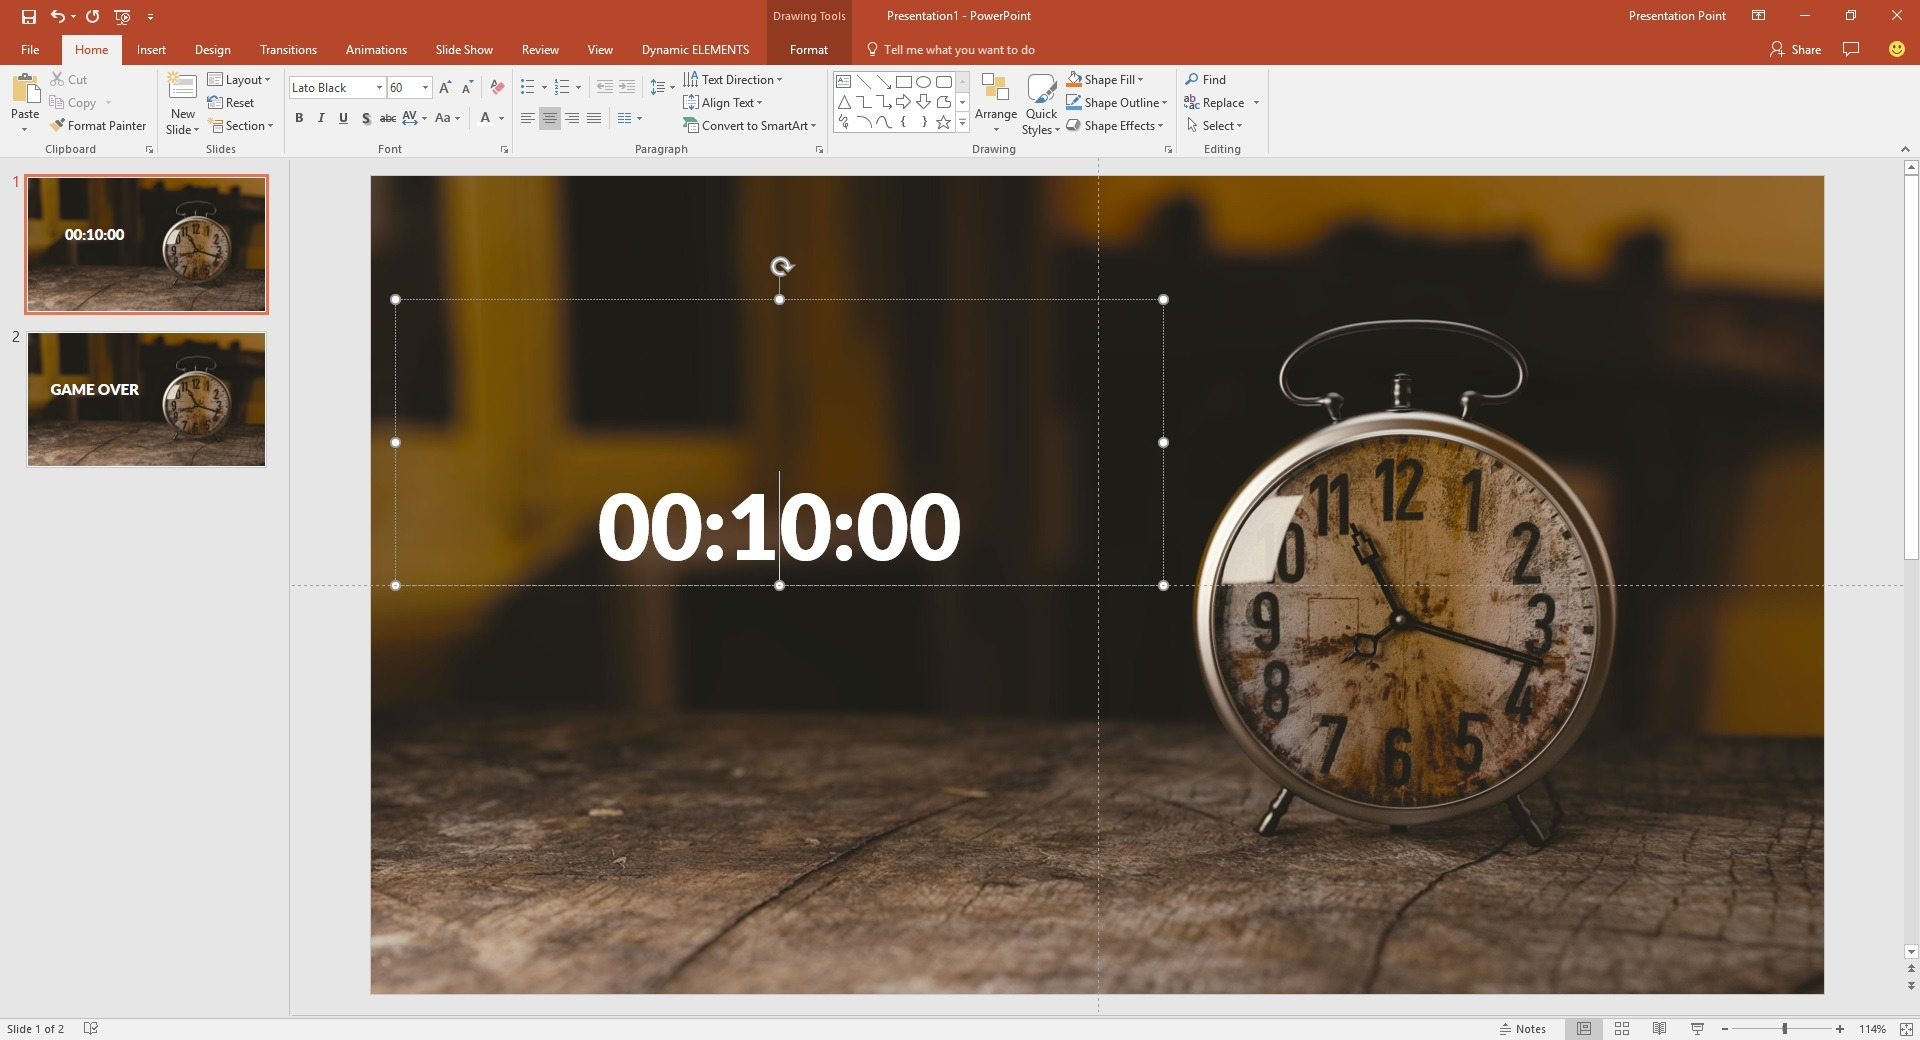 How to Use a Timer in PowerPoint • PresentationPoint